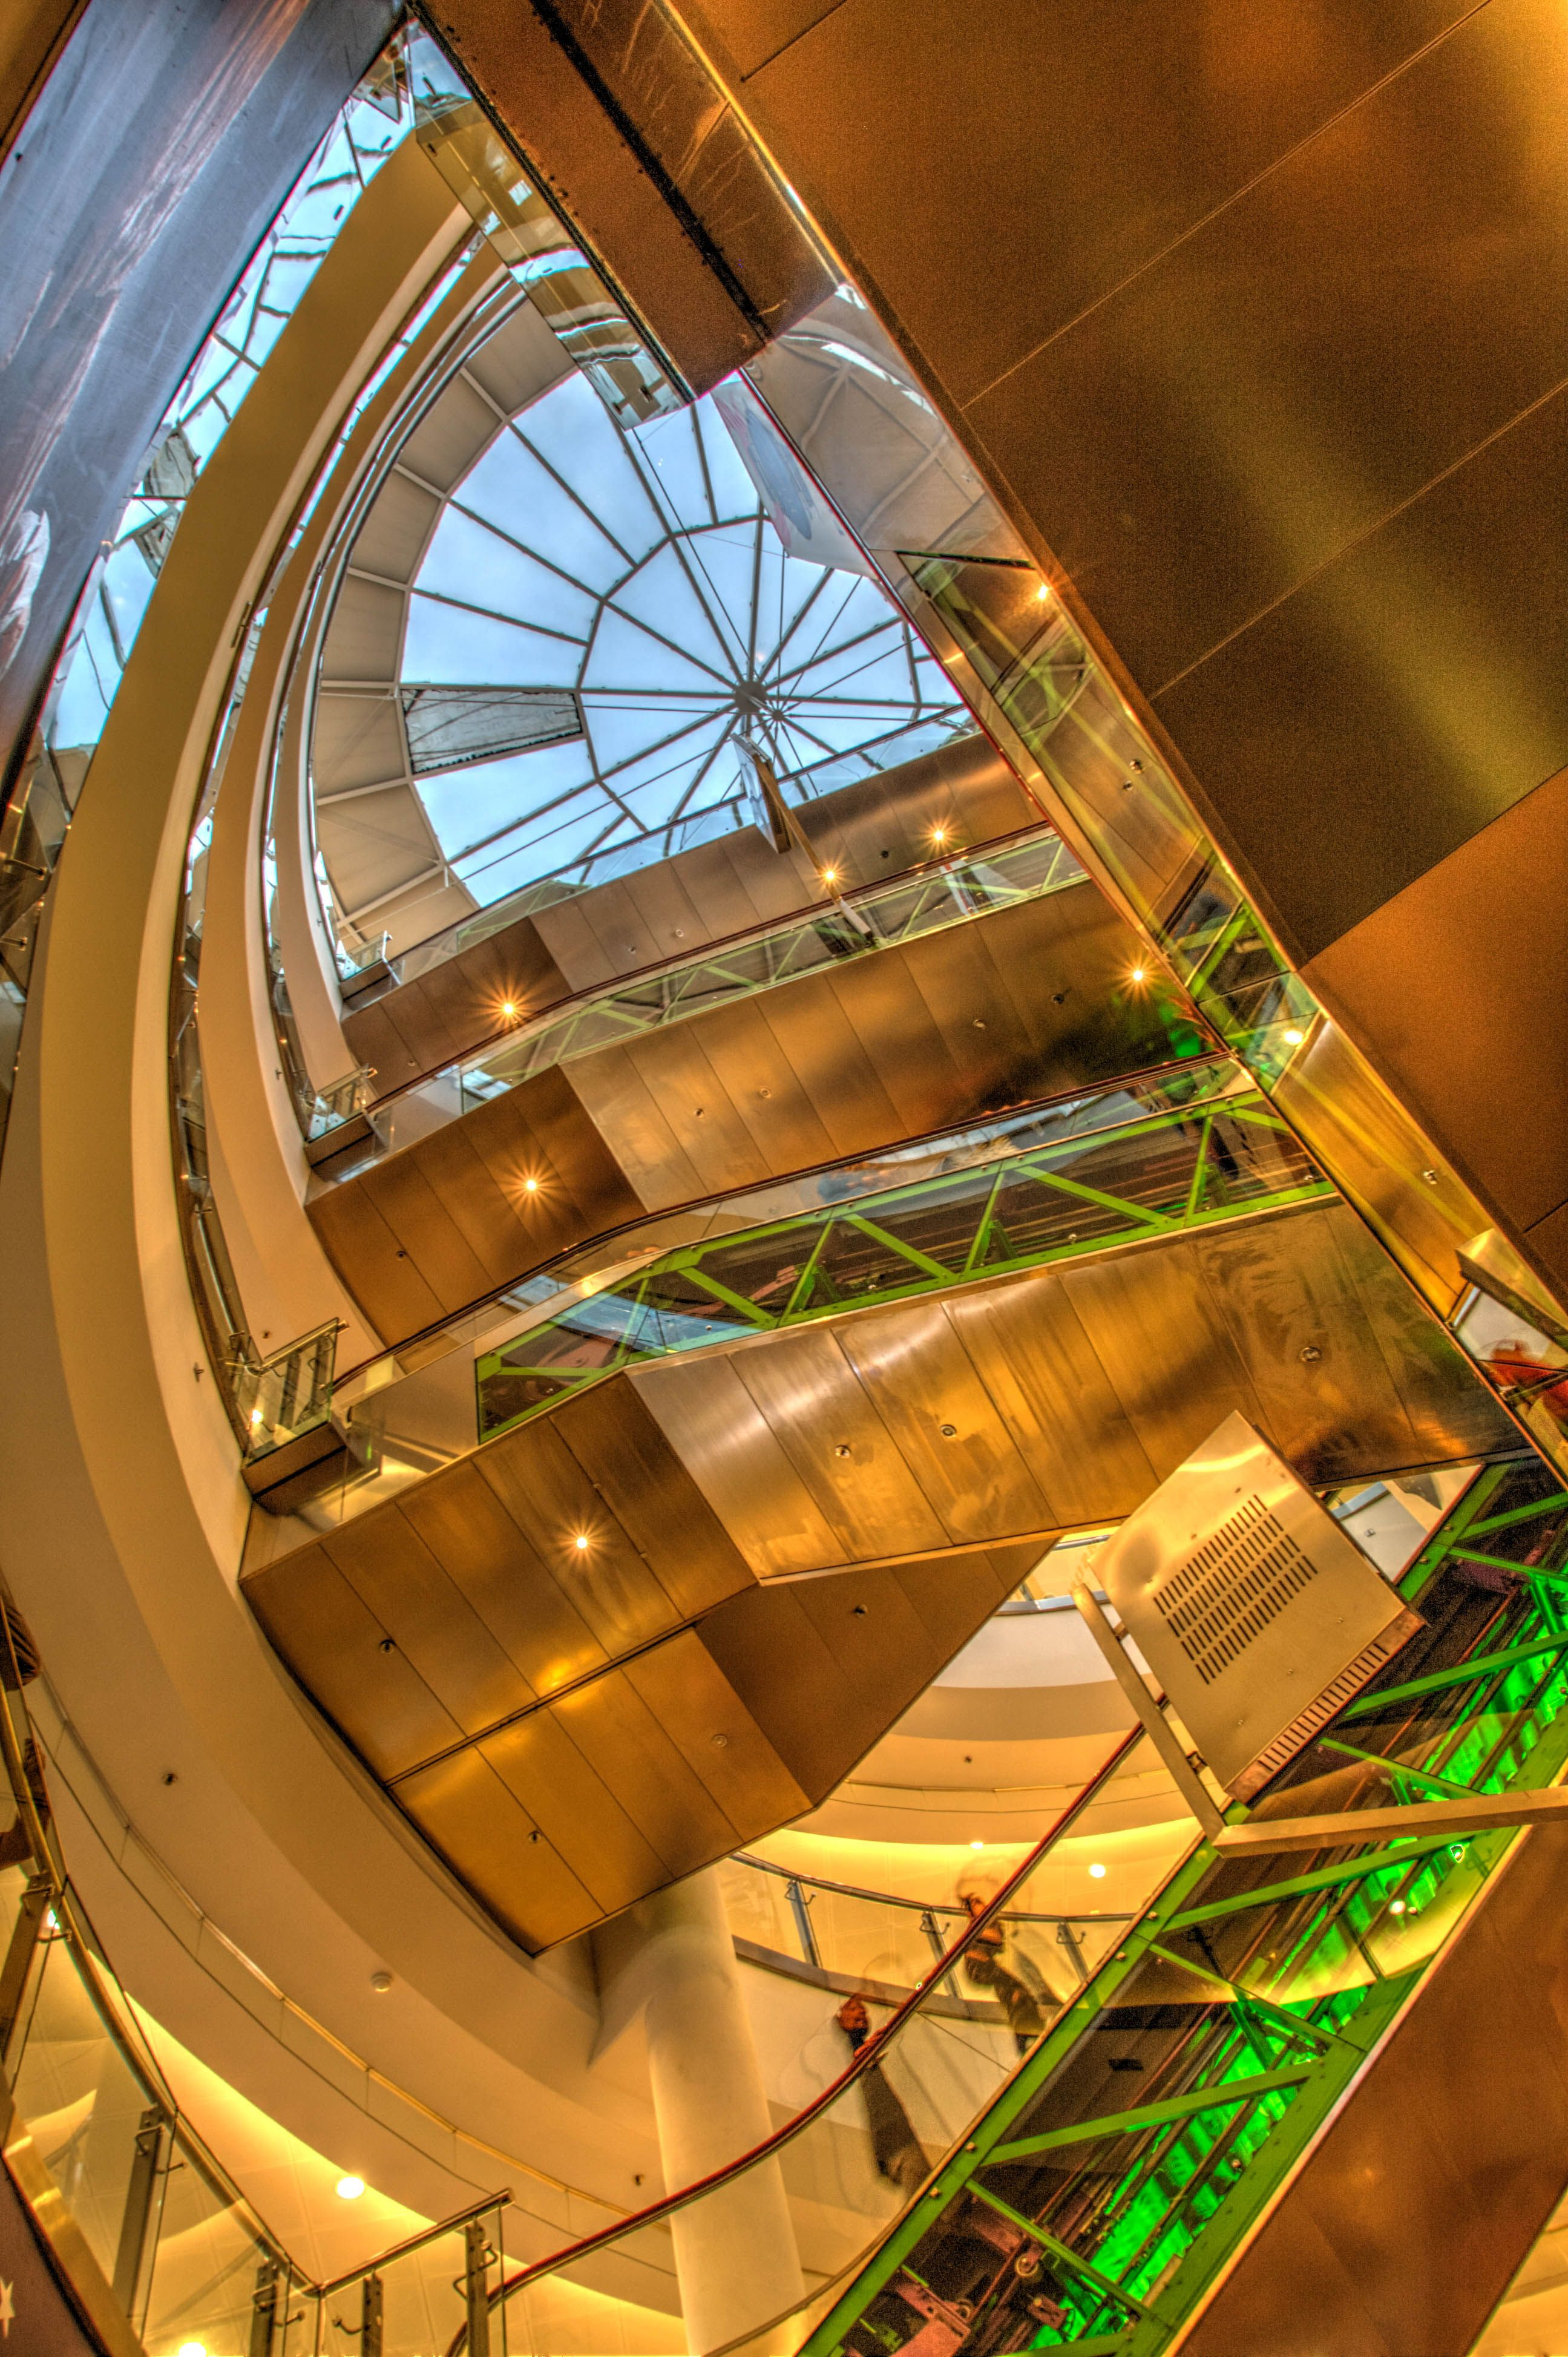 #Złote #Tarasy (Golden Terraces) is a modern #shopping center that sits like a jewel in the center of downtown #Warsaw, #Poland.